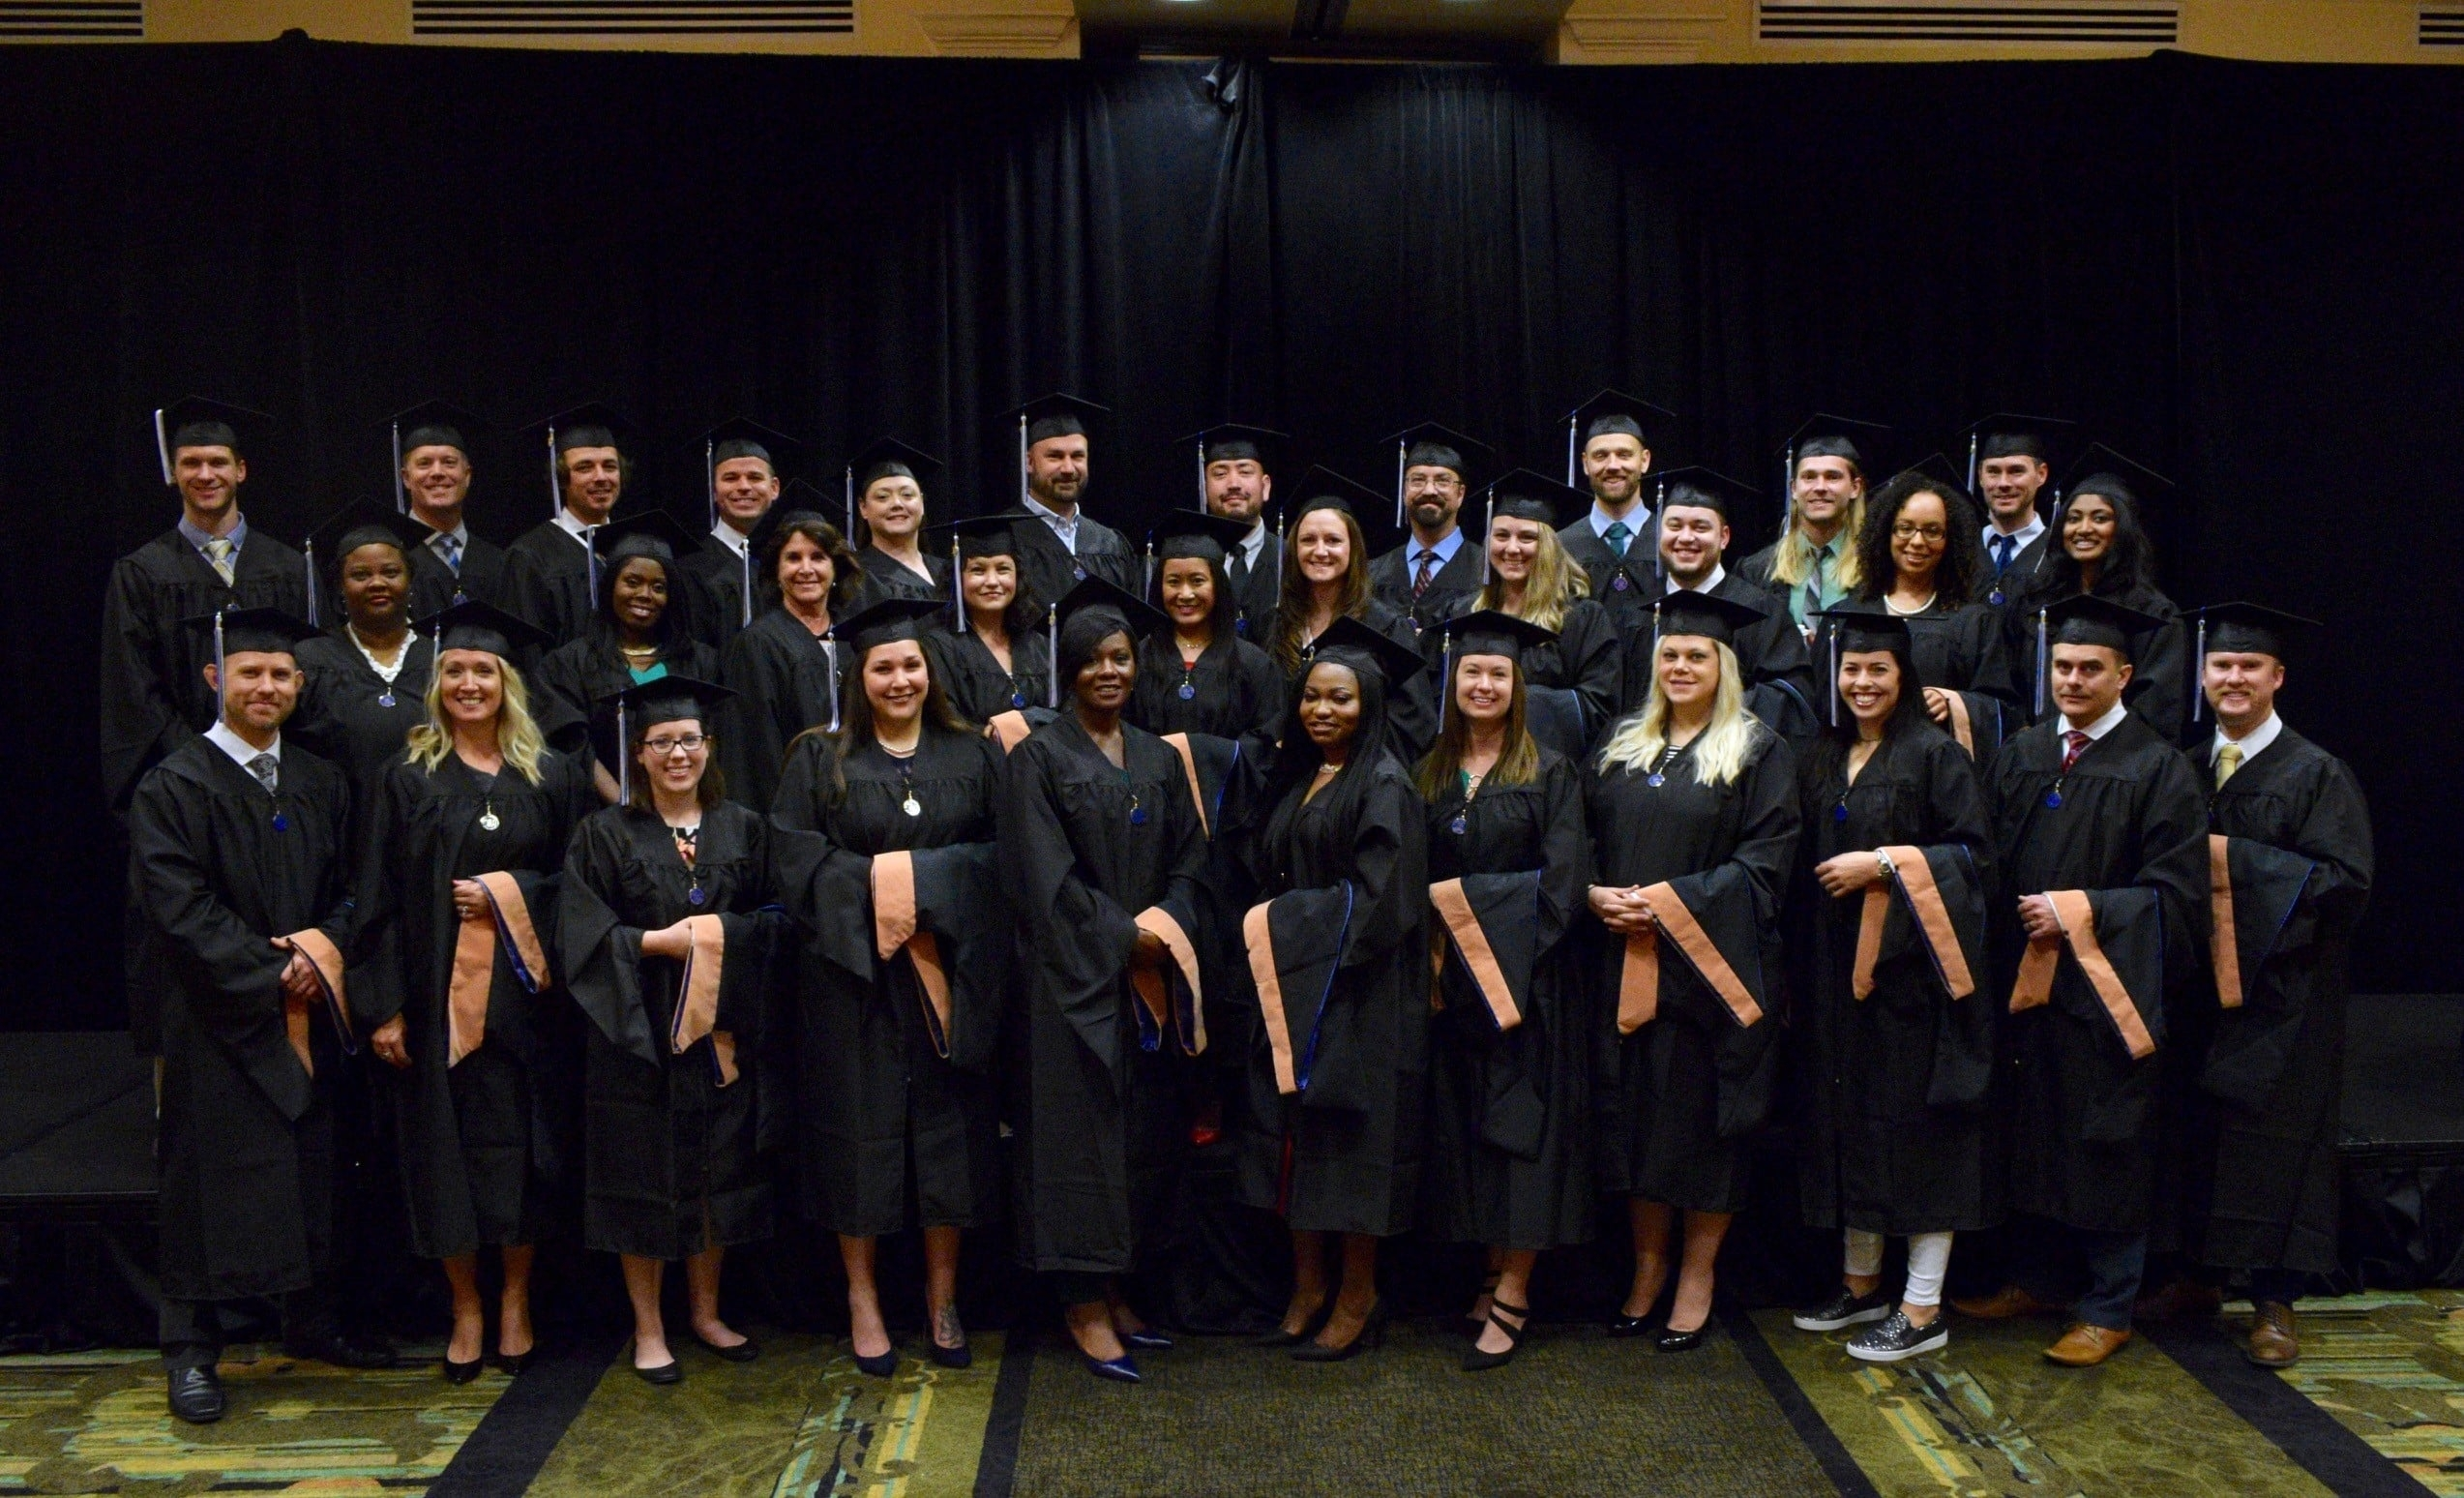 Keiser University Holds Commencement Ceremonies For First